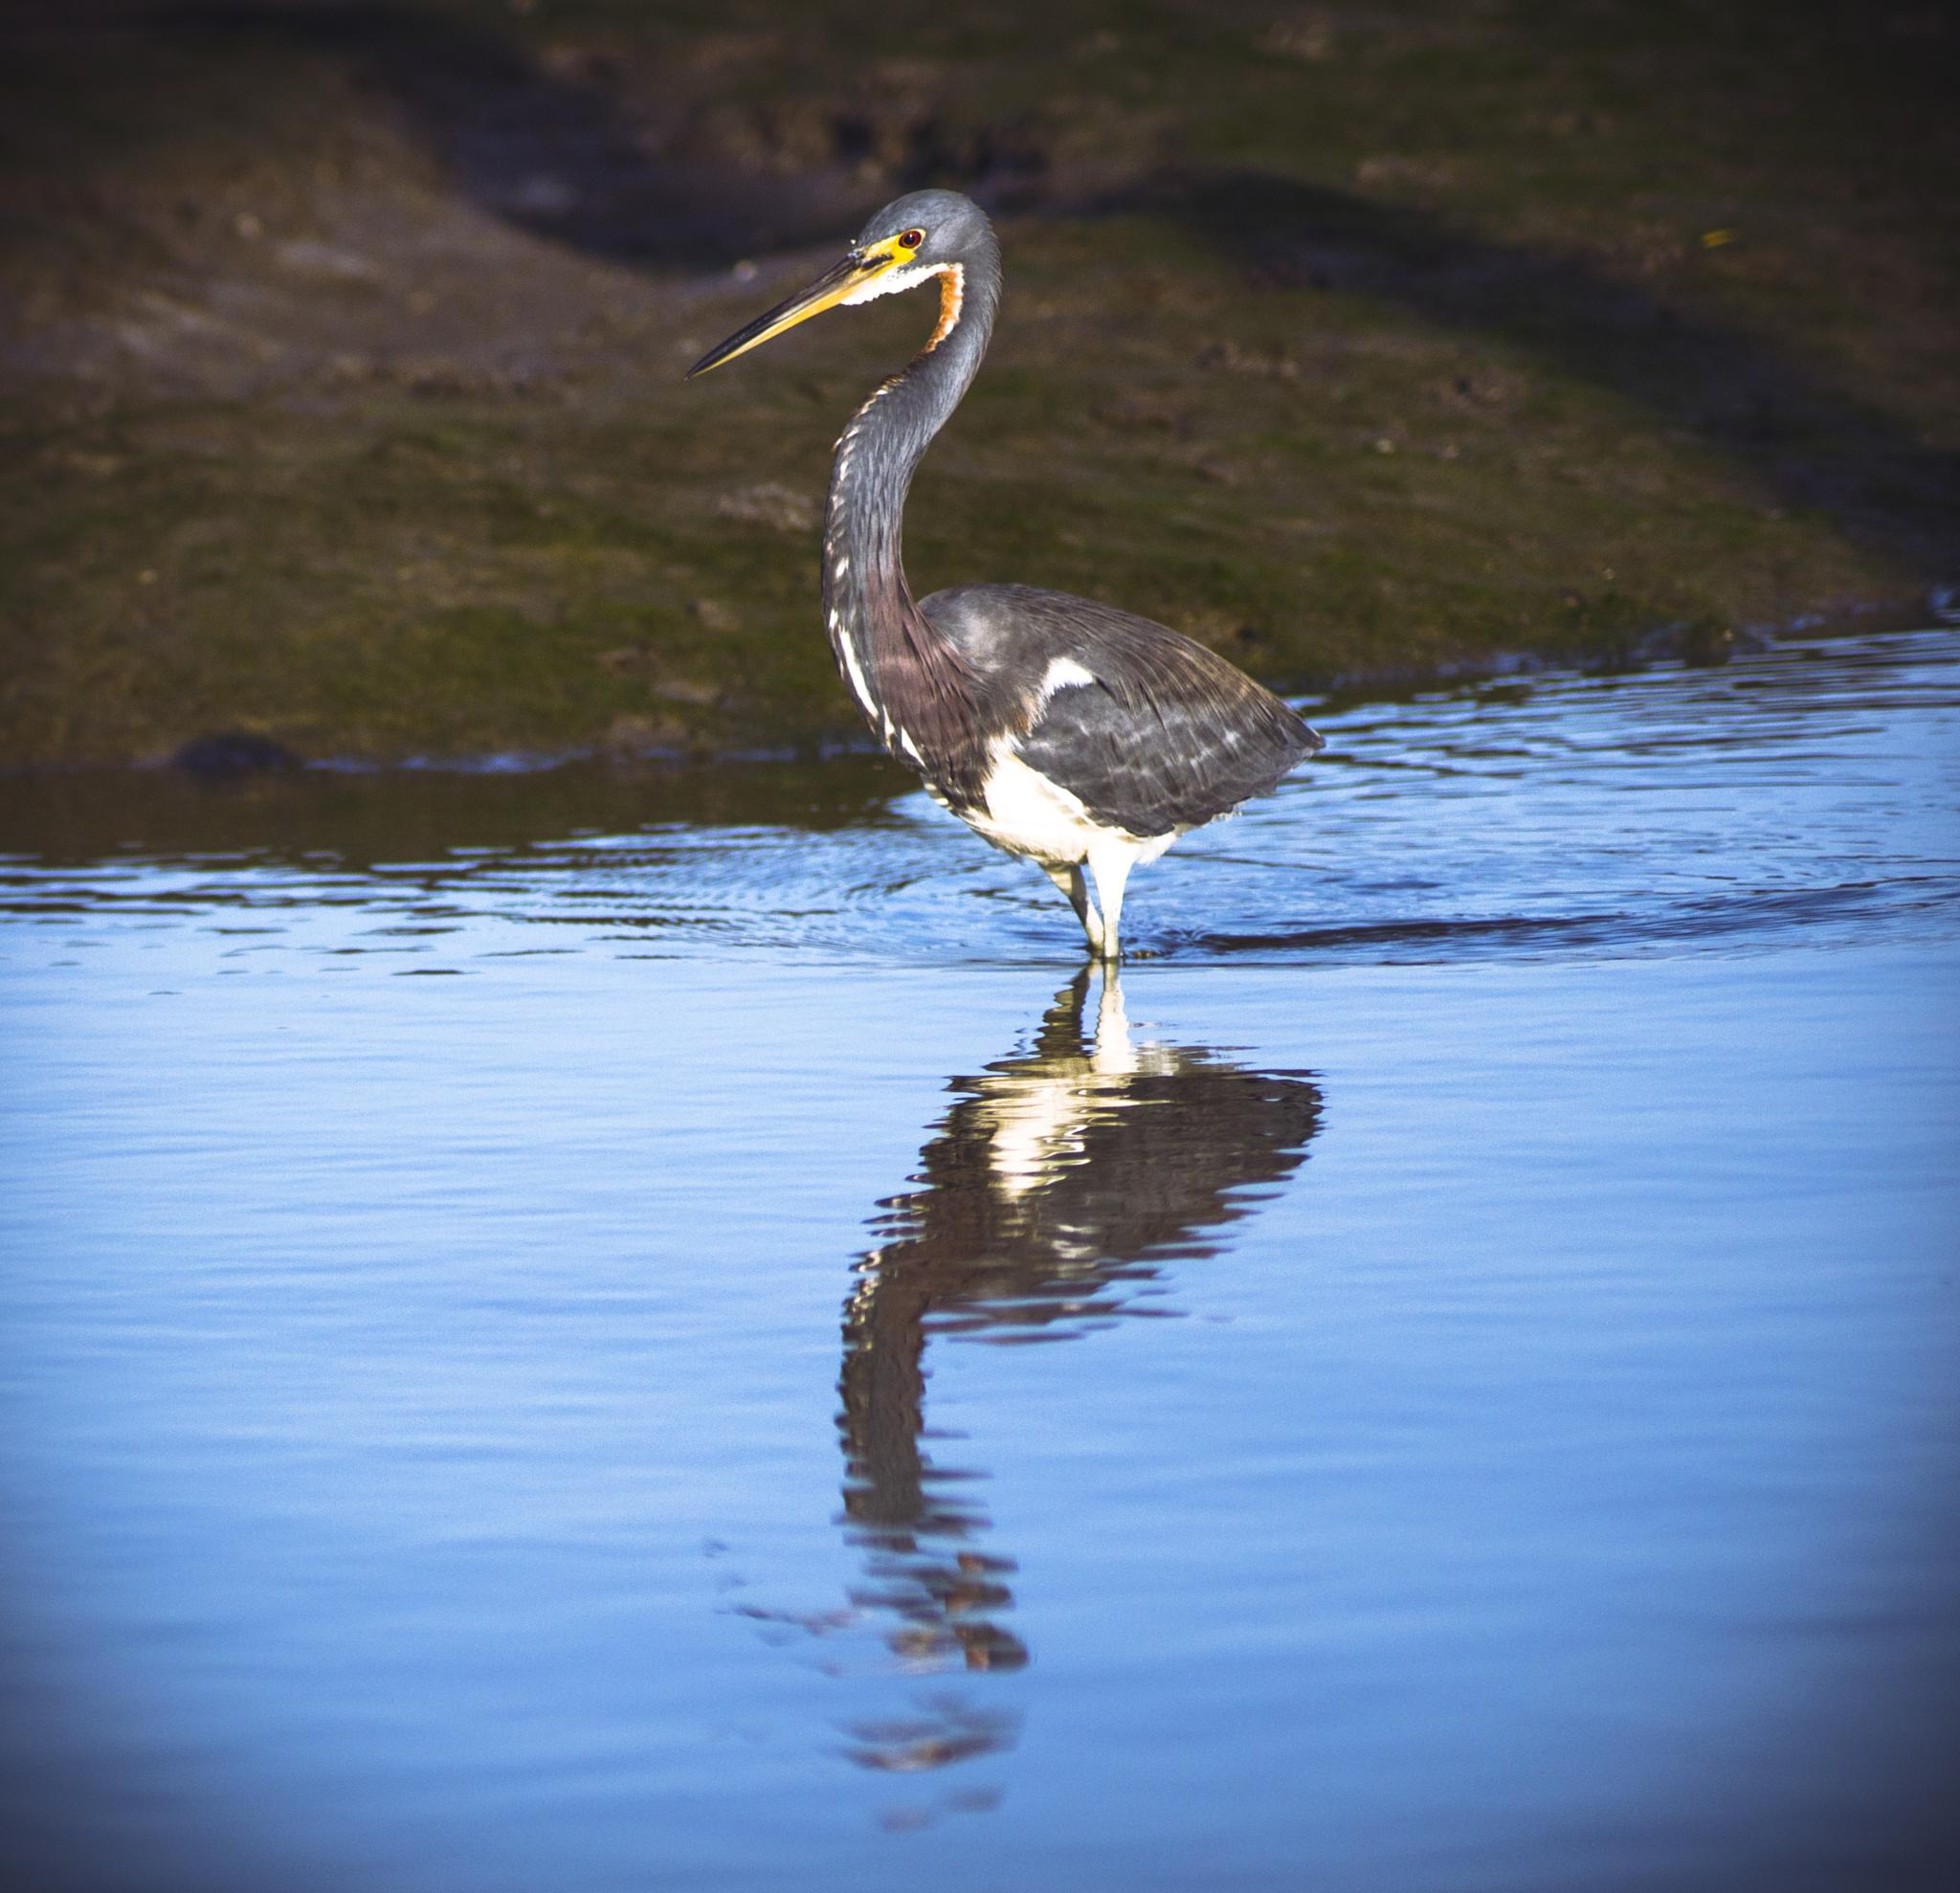 Juvenile Blue Heron by Michael C Frizzell